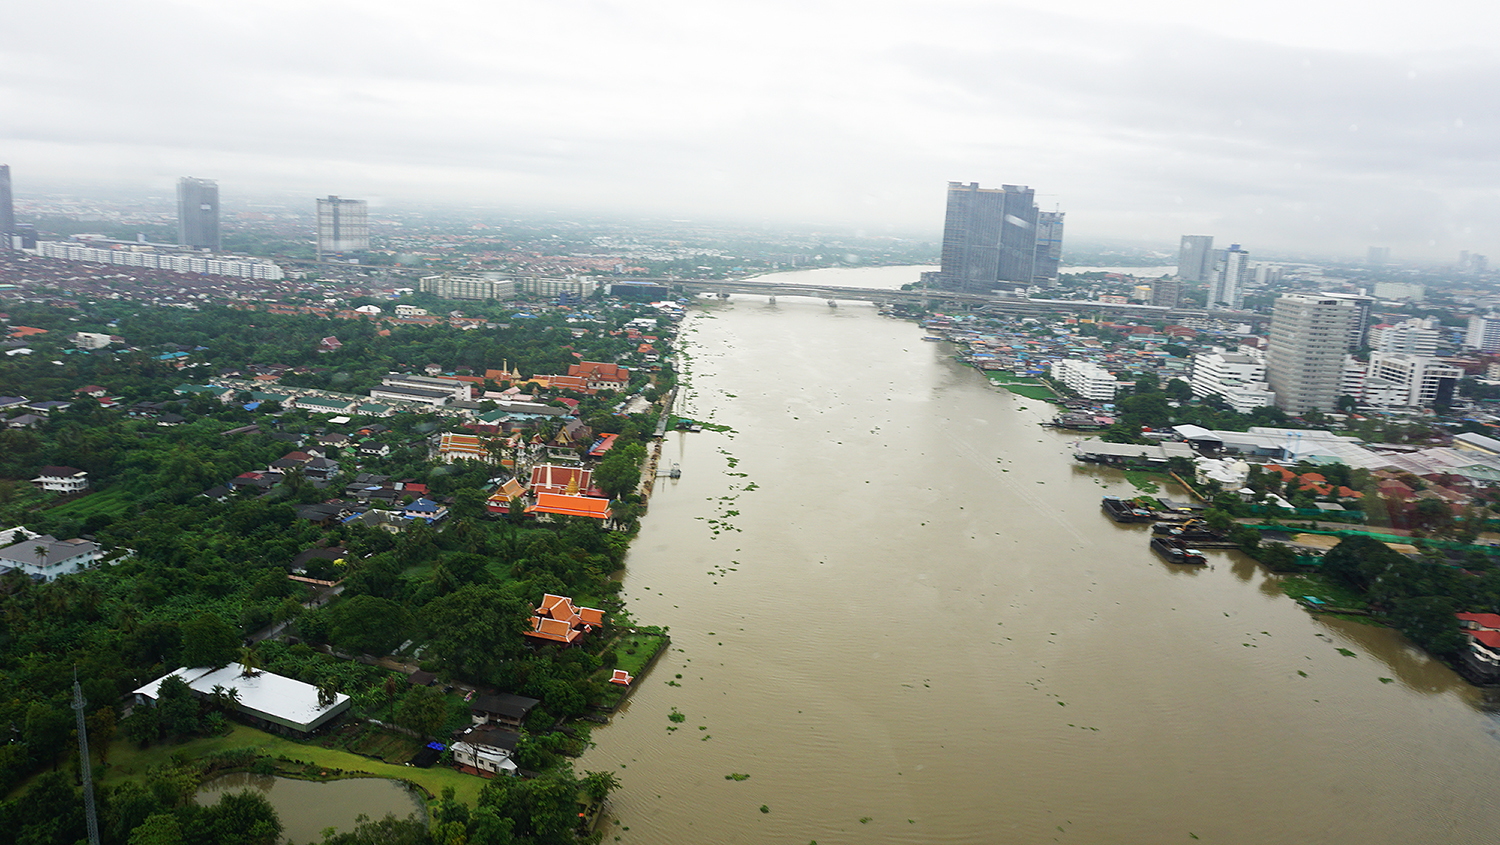 Helicopter Sightseeing Bangkok Thailand Solaire Heliluck Aviation Services 34